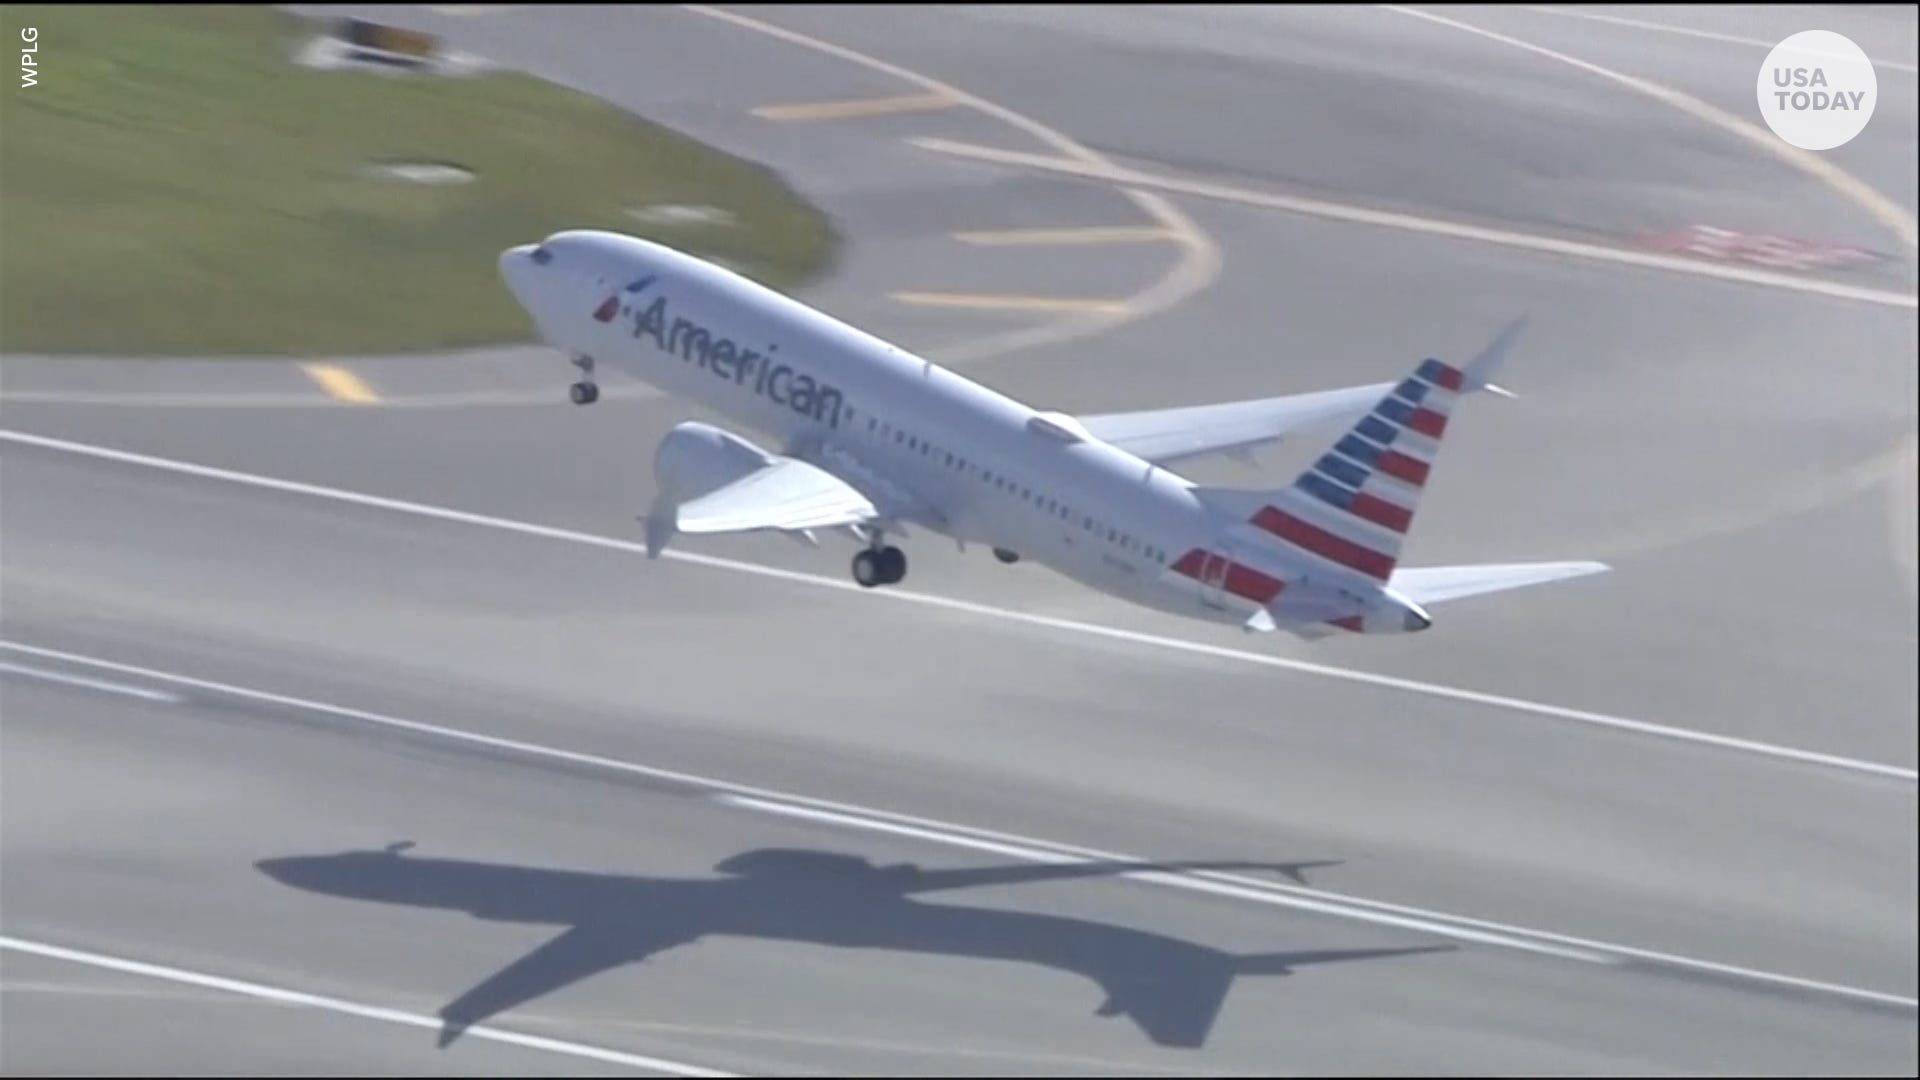 Boeing 737 Max planes return to the skies after being grounded for safety concerns